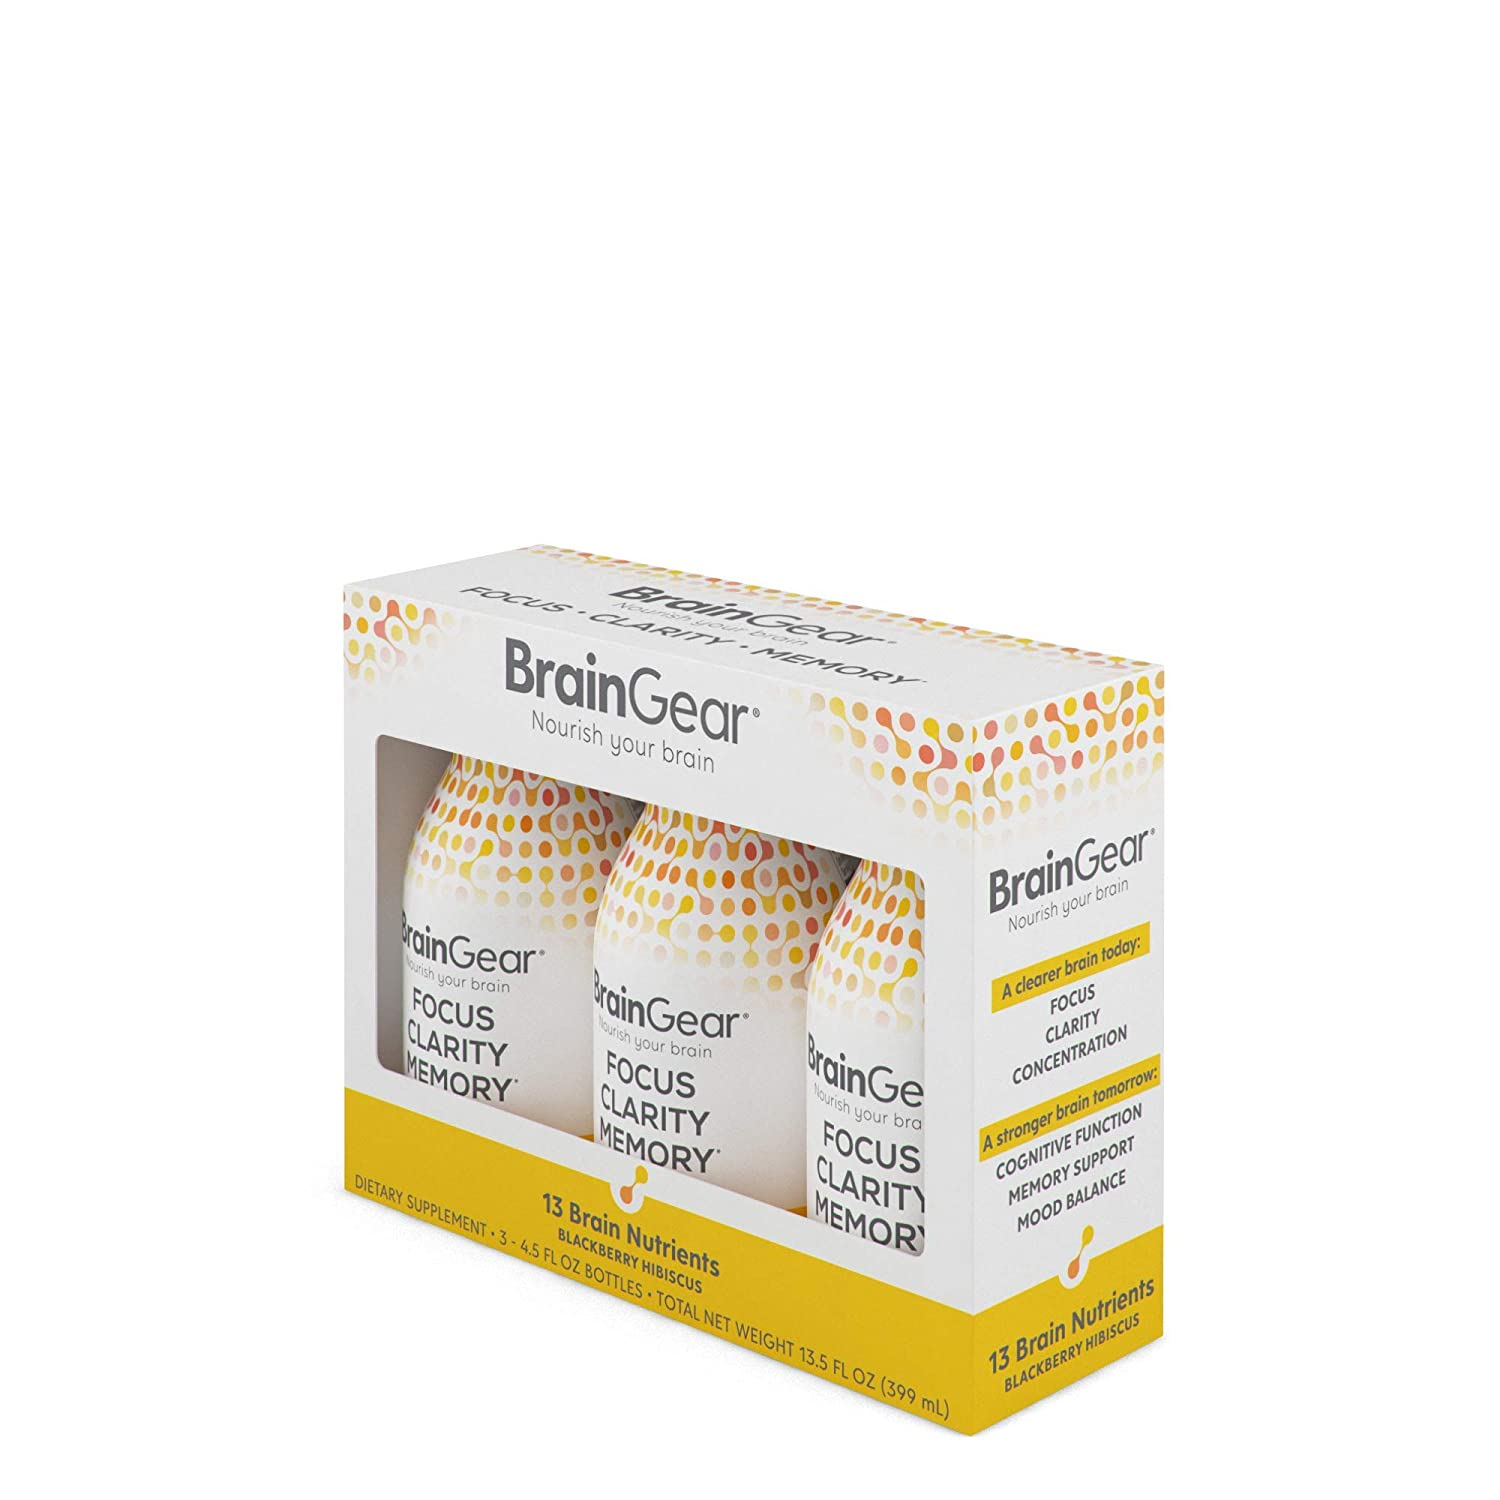 BrainGear Nootropic Brain Booster Shot, Drink Supplement, Lifts Brain Fog,  Improves Focus, Clarity,